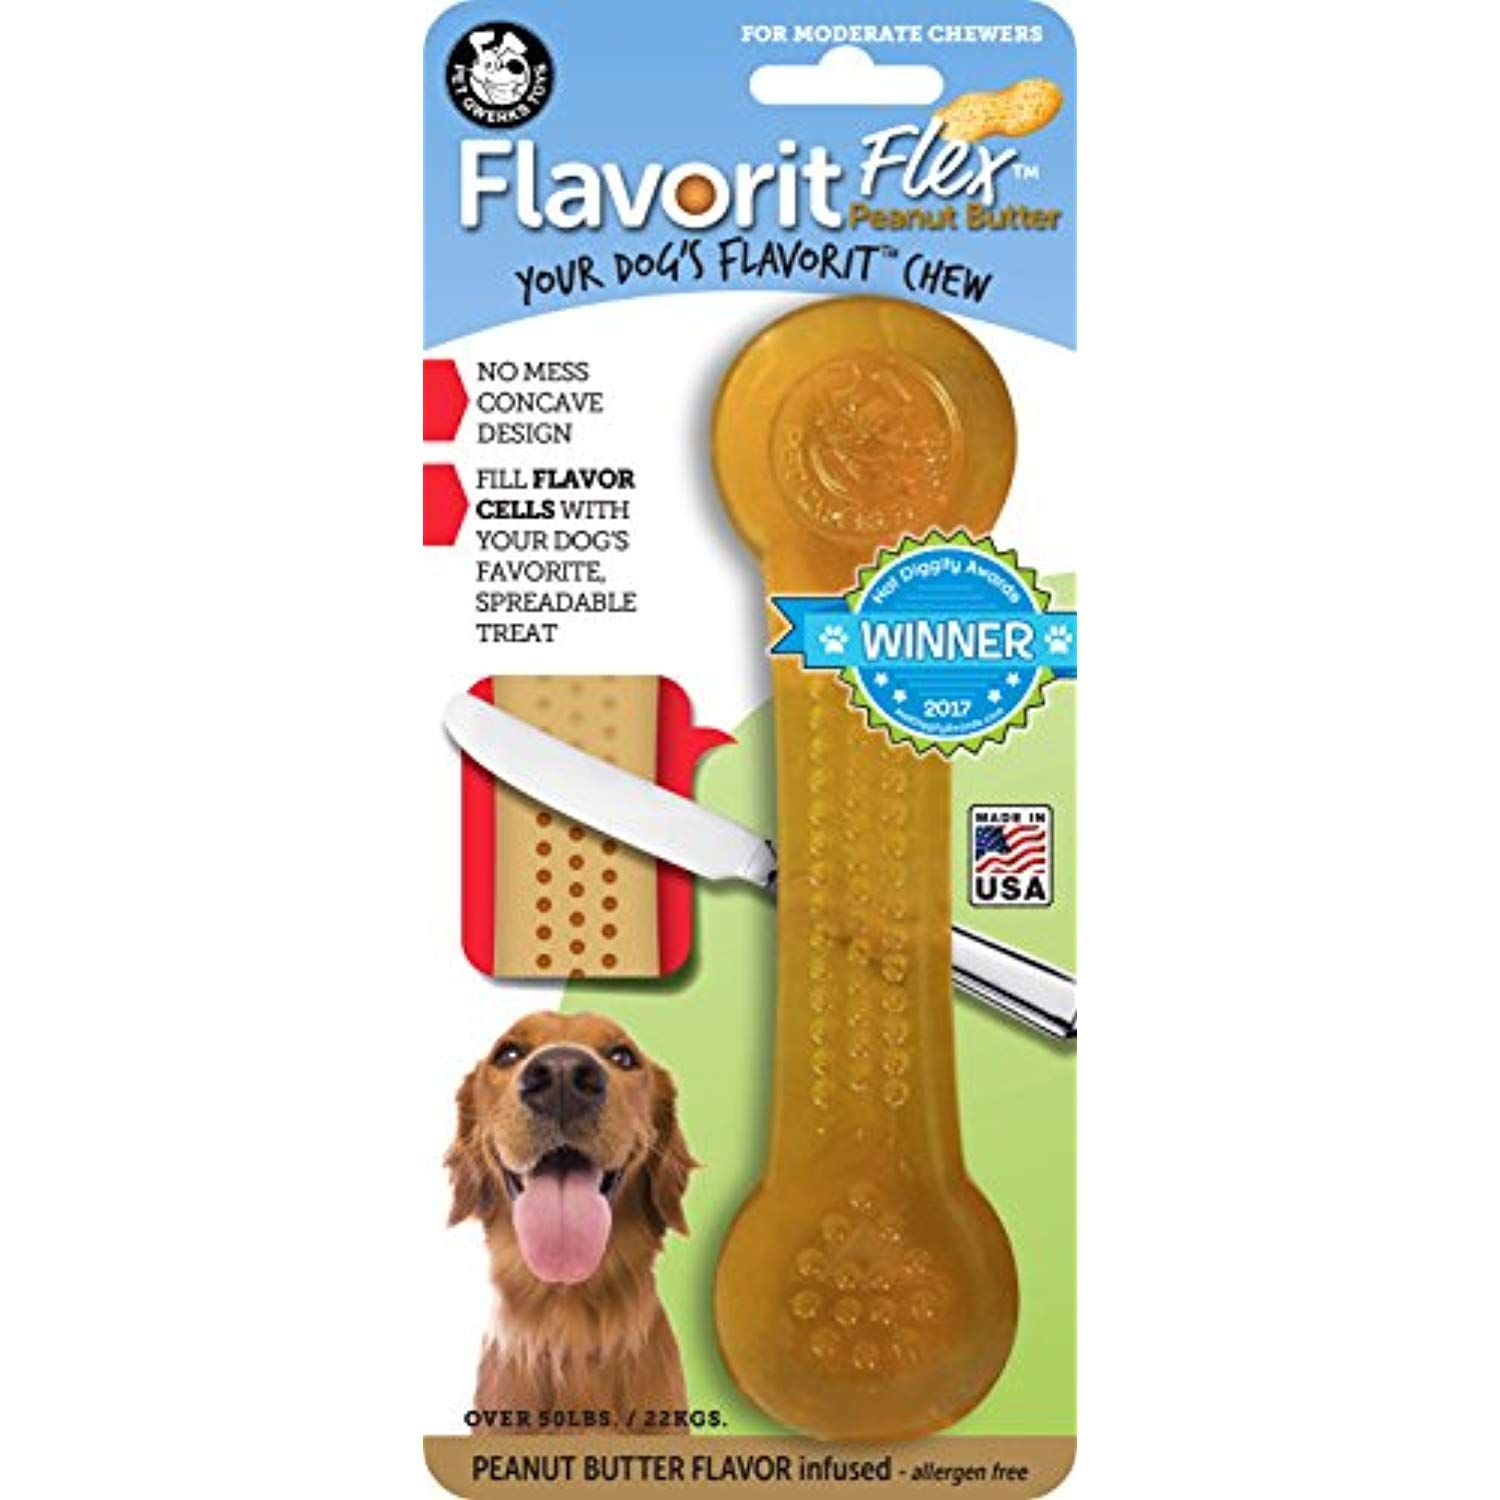 Pet Qwerks Flavorit Peanut Butter Flavored Flex Bone For Moderate